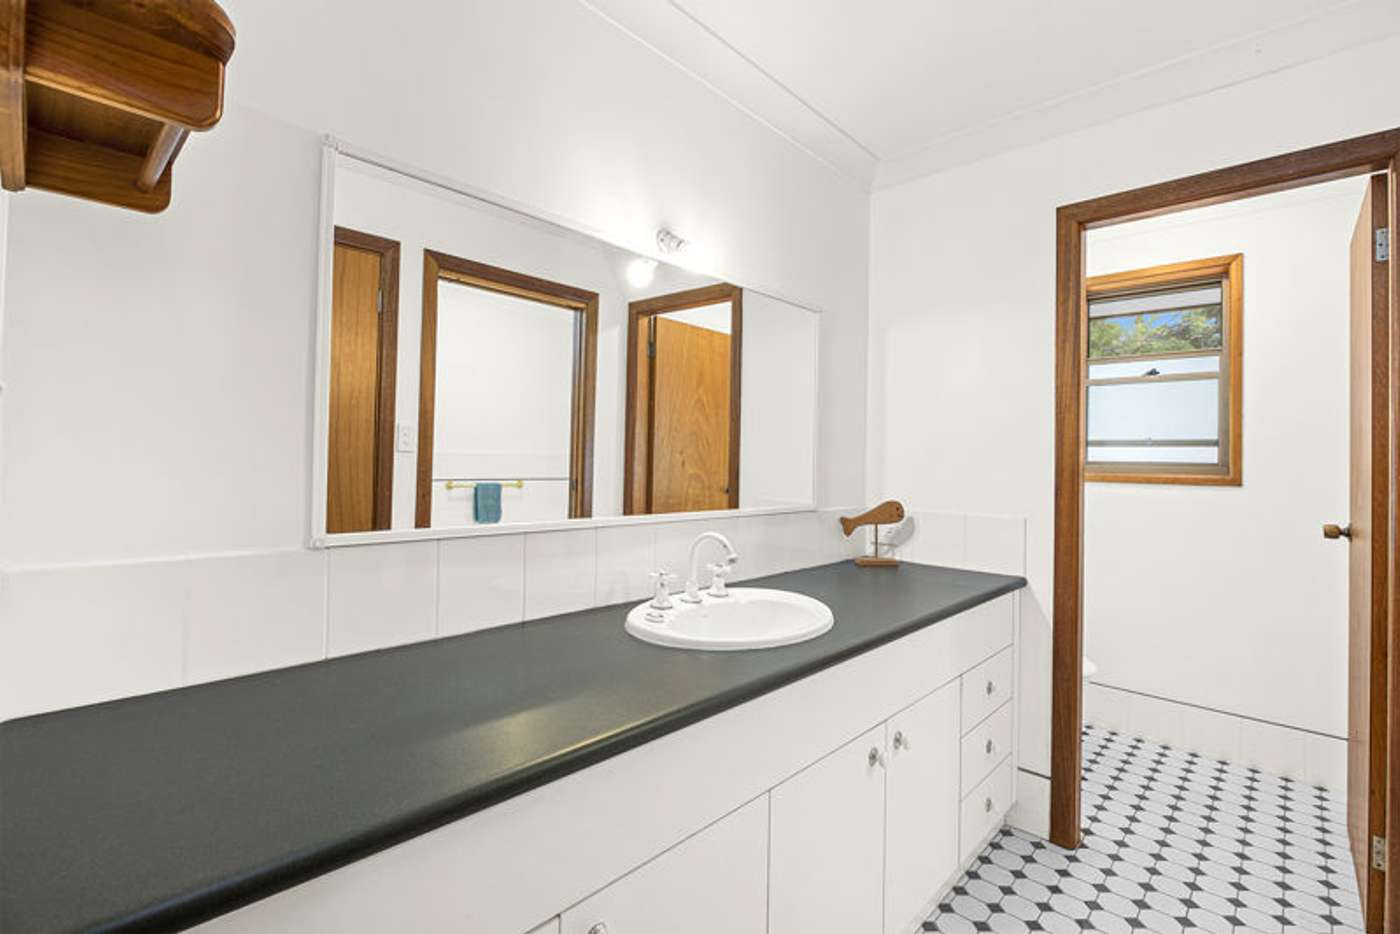 Sixth view of Homely house listing, 105 Mount Street, Bellingen NSW 2454